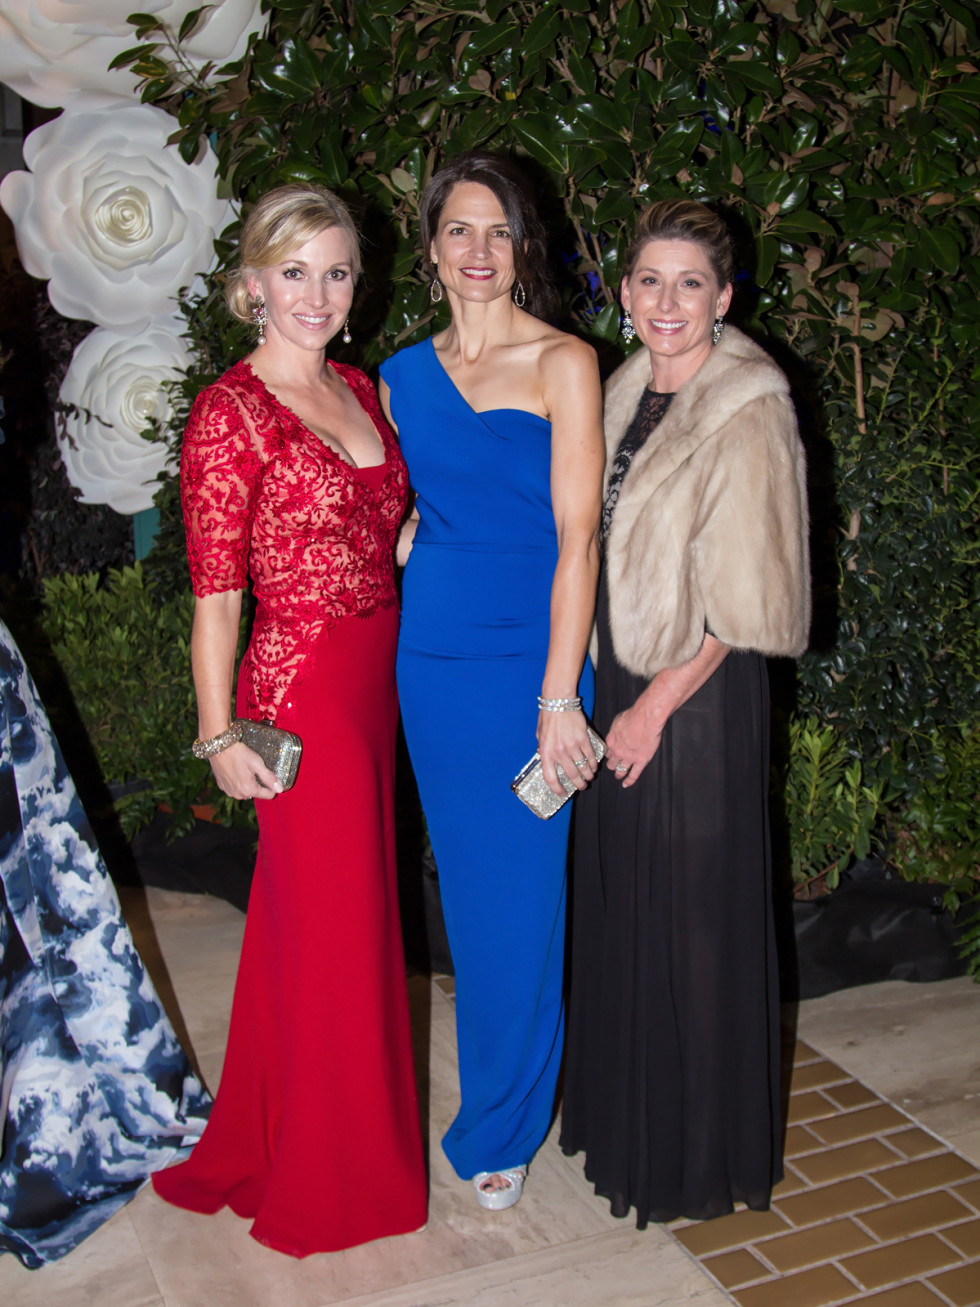 Tavia Hunt in Reem Acra, Meredith Messick, Cammie Heflin in Alice+Olivia